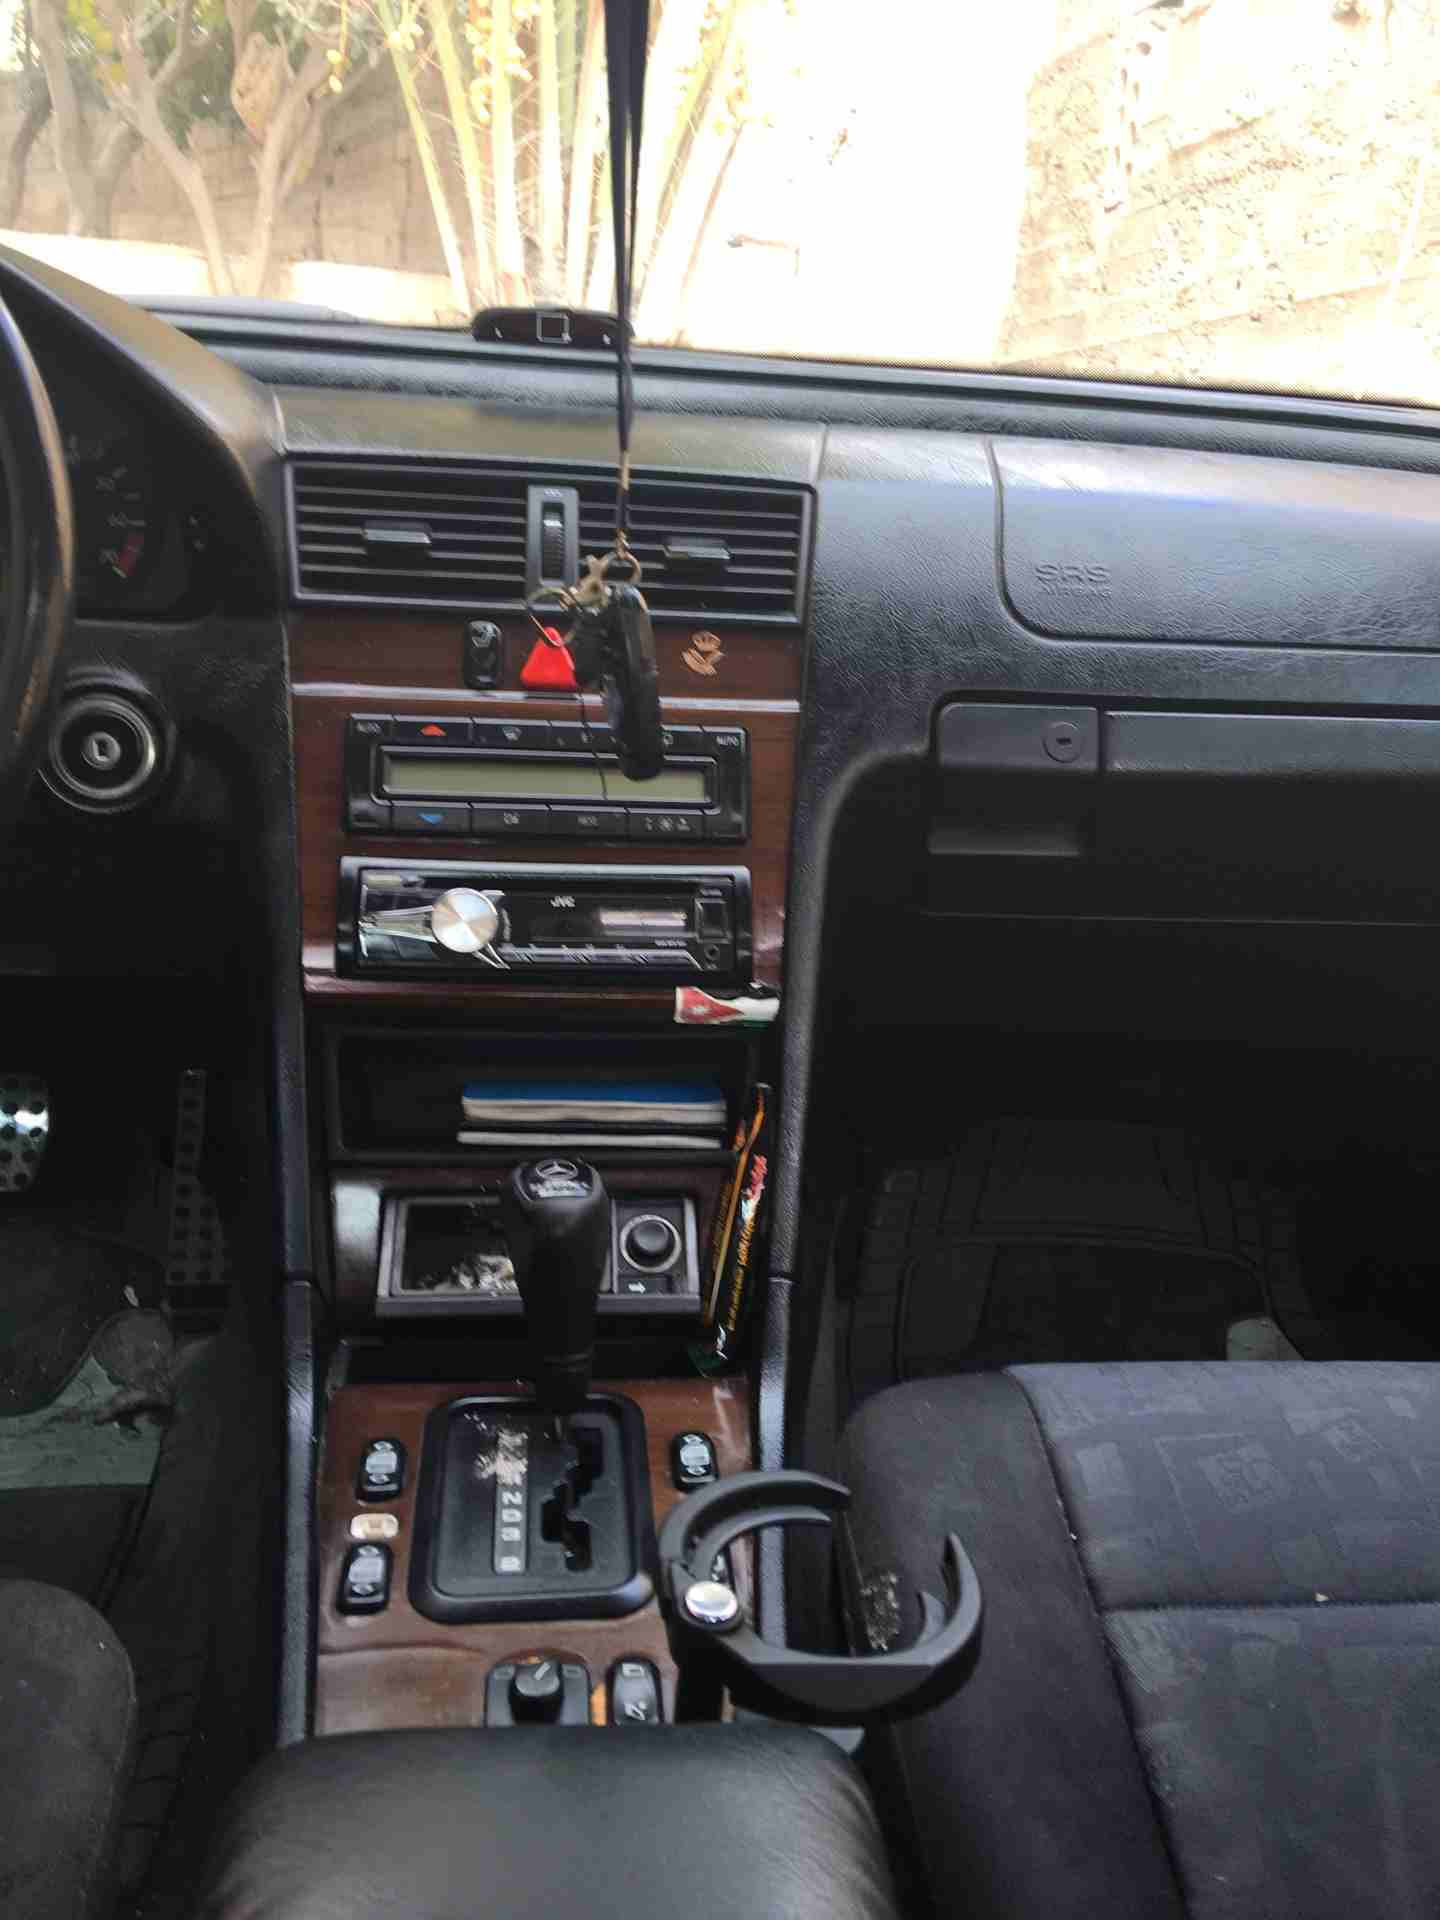 I am advertising my 2018 Lexus LX 570for sale, the car is in perfect condition and it runs on low mileage, contact me for more information regarding the s-  c200 للبيع لا تنسَ أنك...